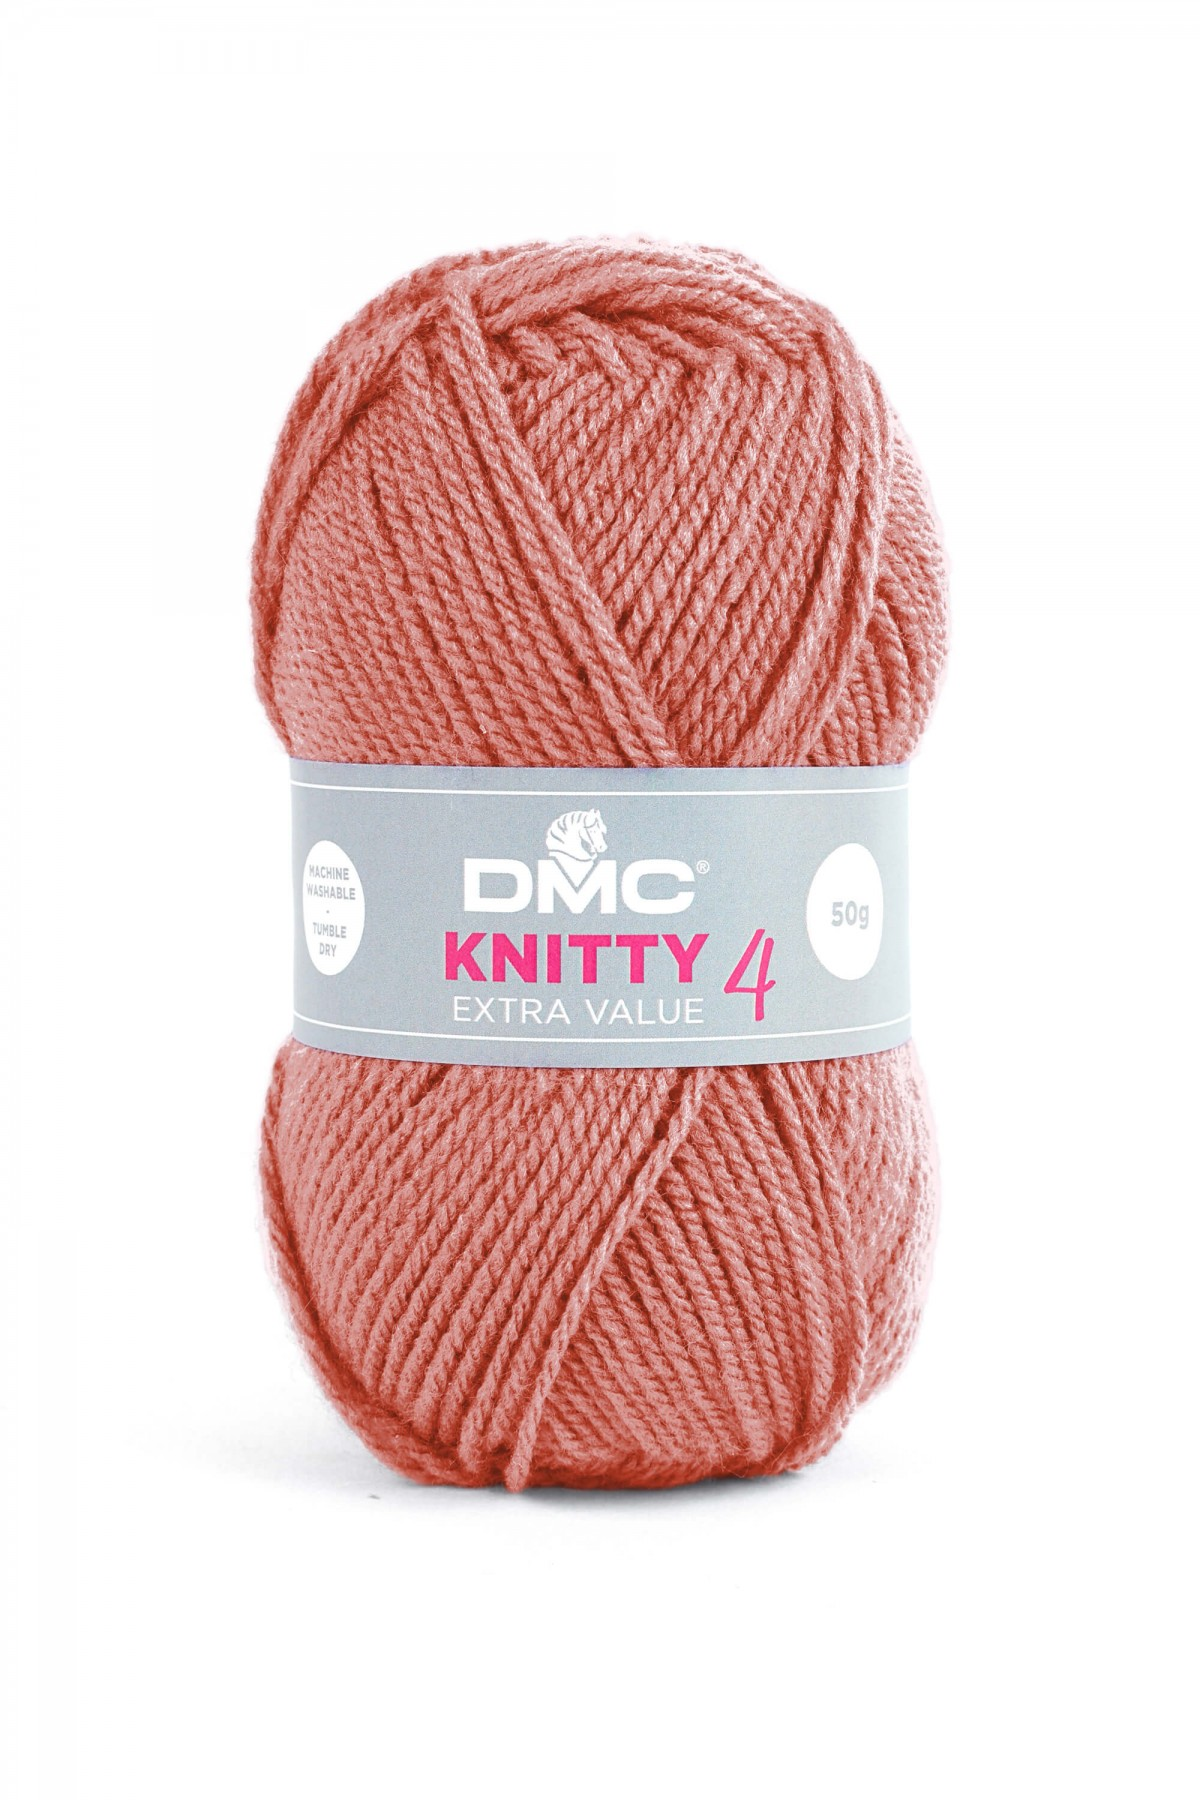 Lana acrílica DMC Knitty 4 Just Knitting 50 g 702